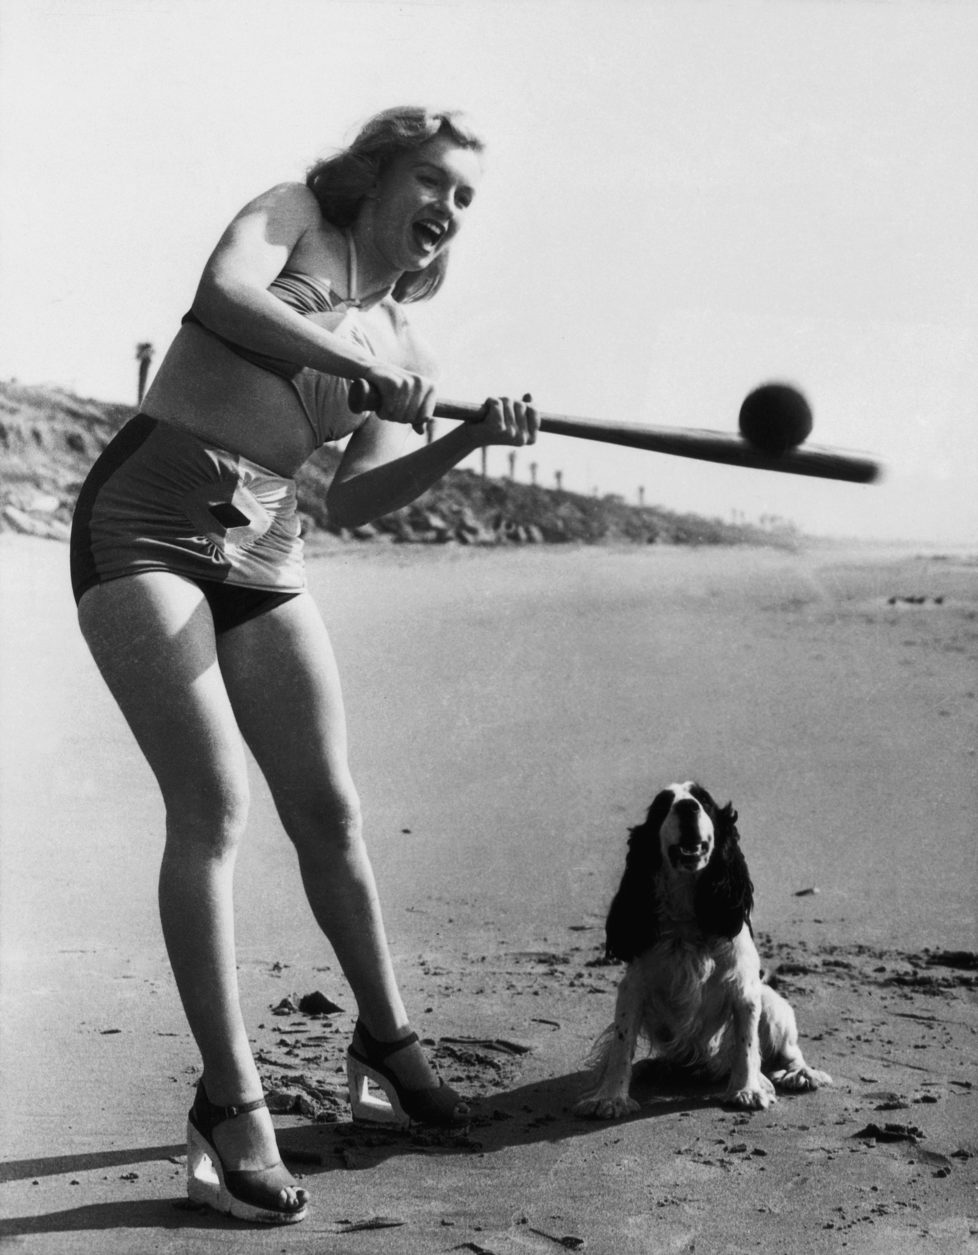 The American actress Marilyn Monroe playing softball in a bathing suit on a beach. USA, 1950s (Photo by Mondadori Portfolio via Getty Images)